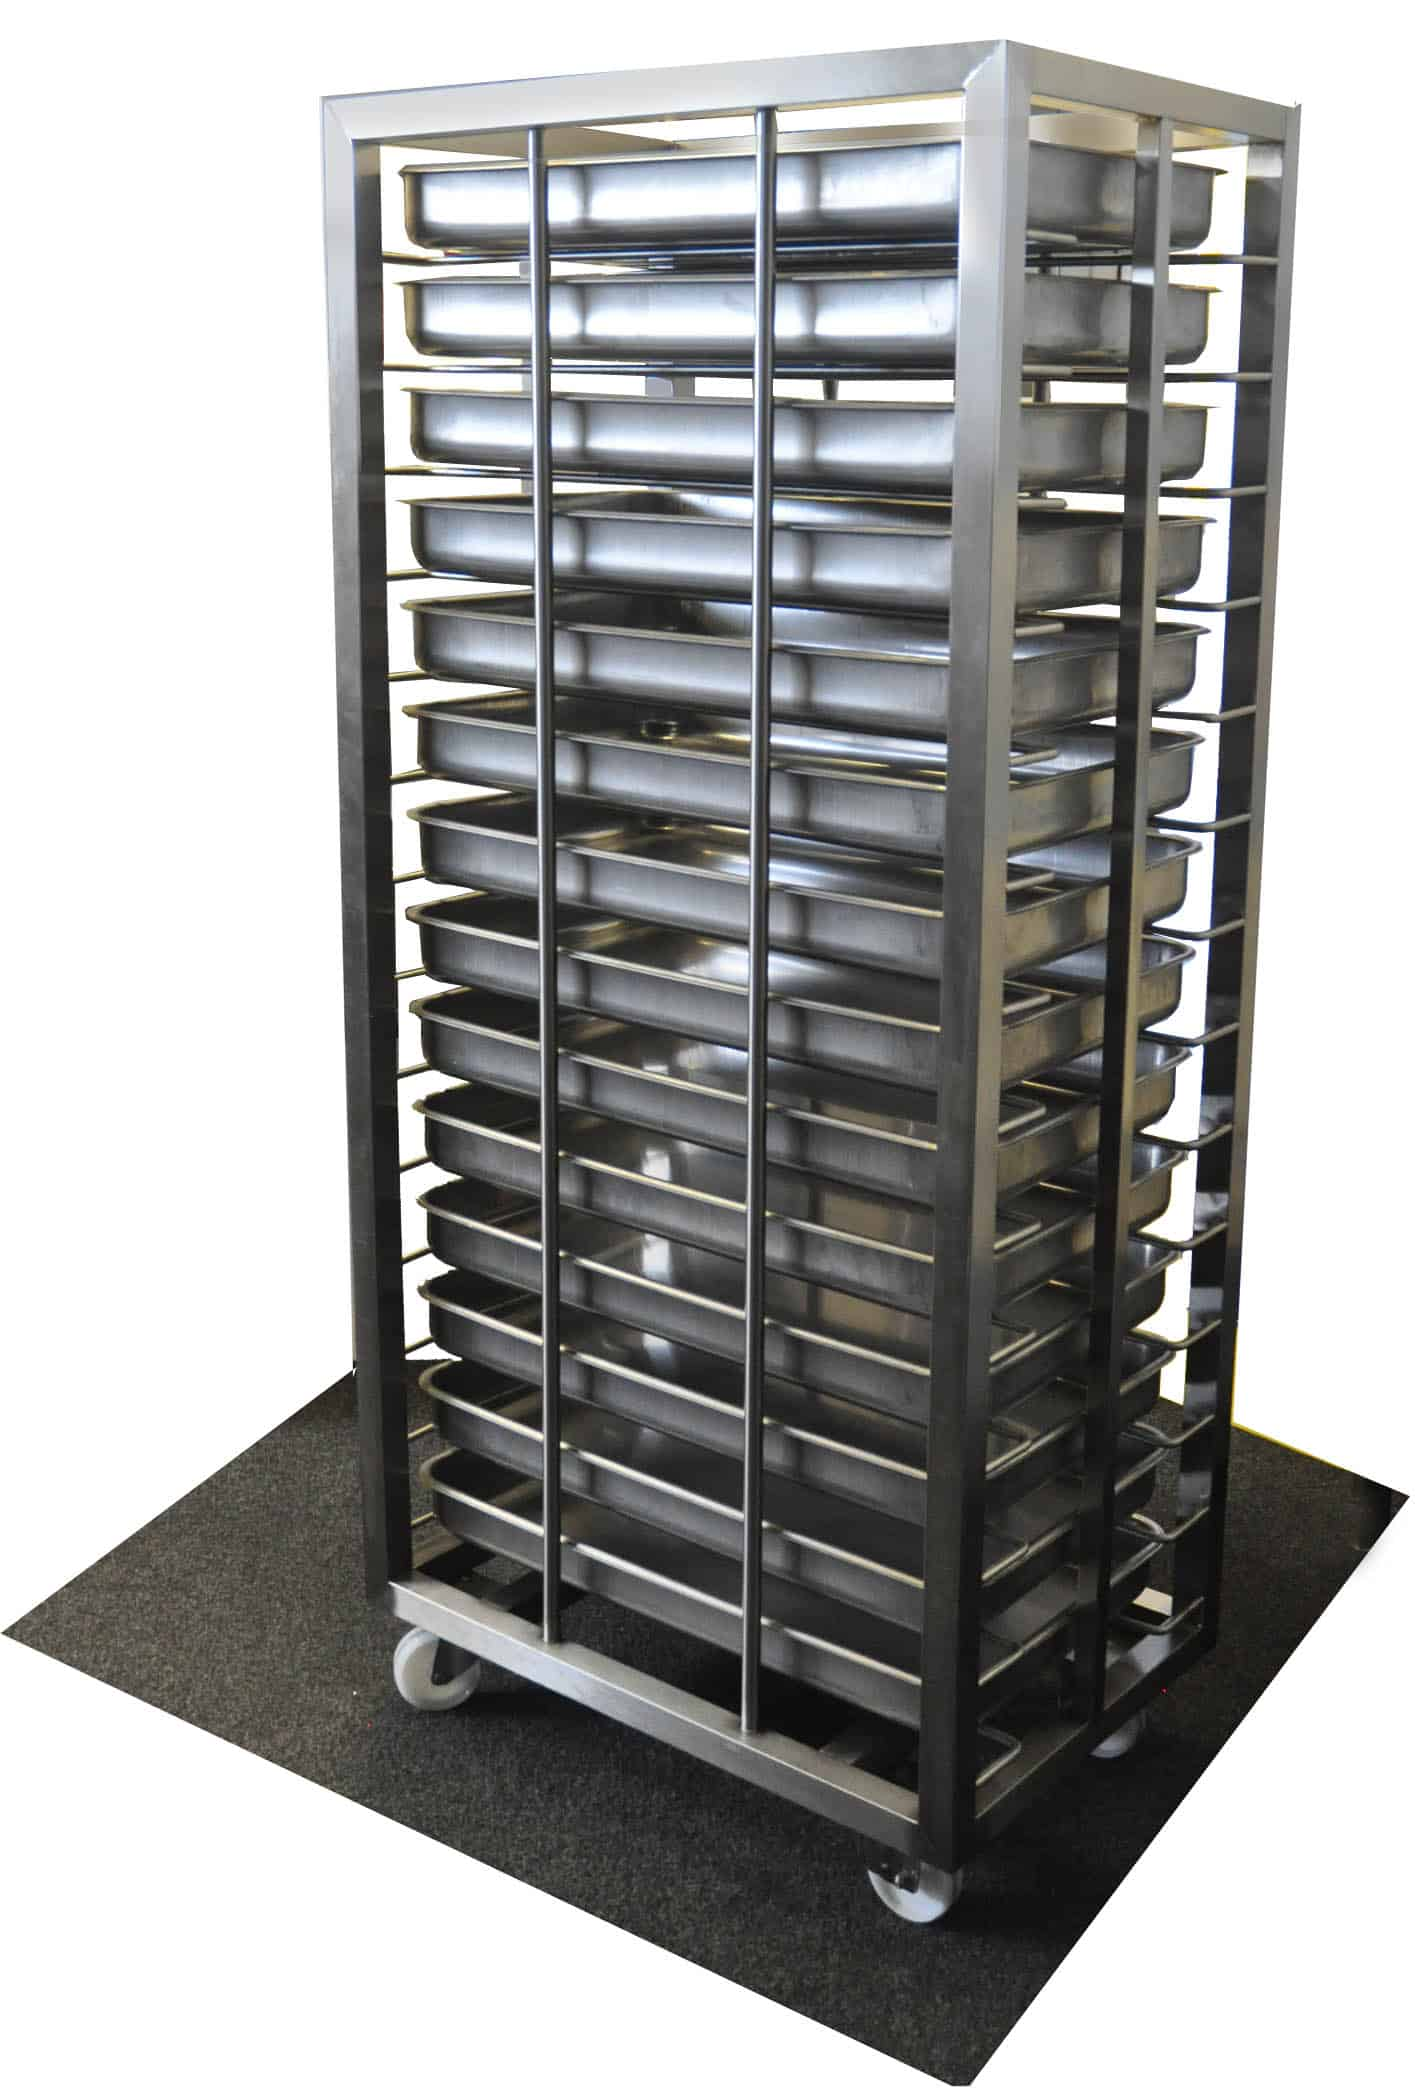 Stainless Steel Bespoke Racks